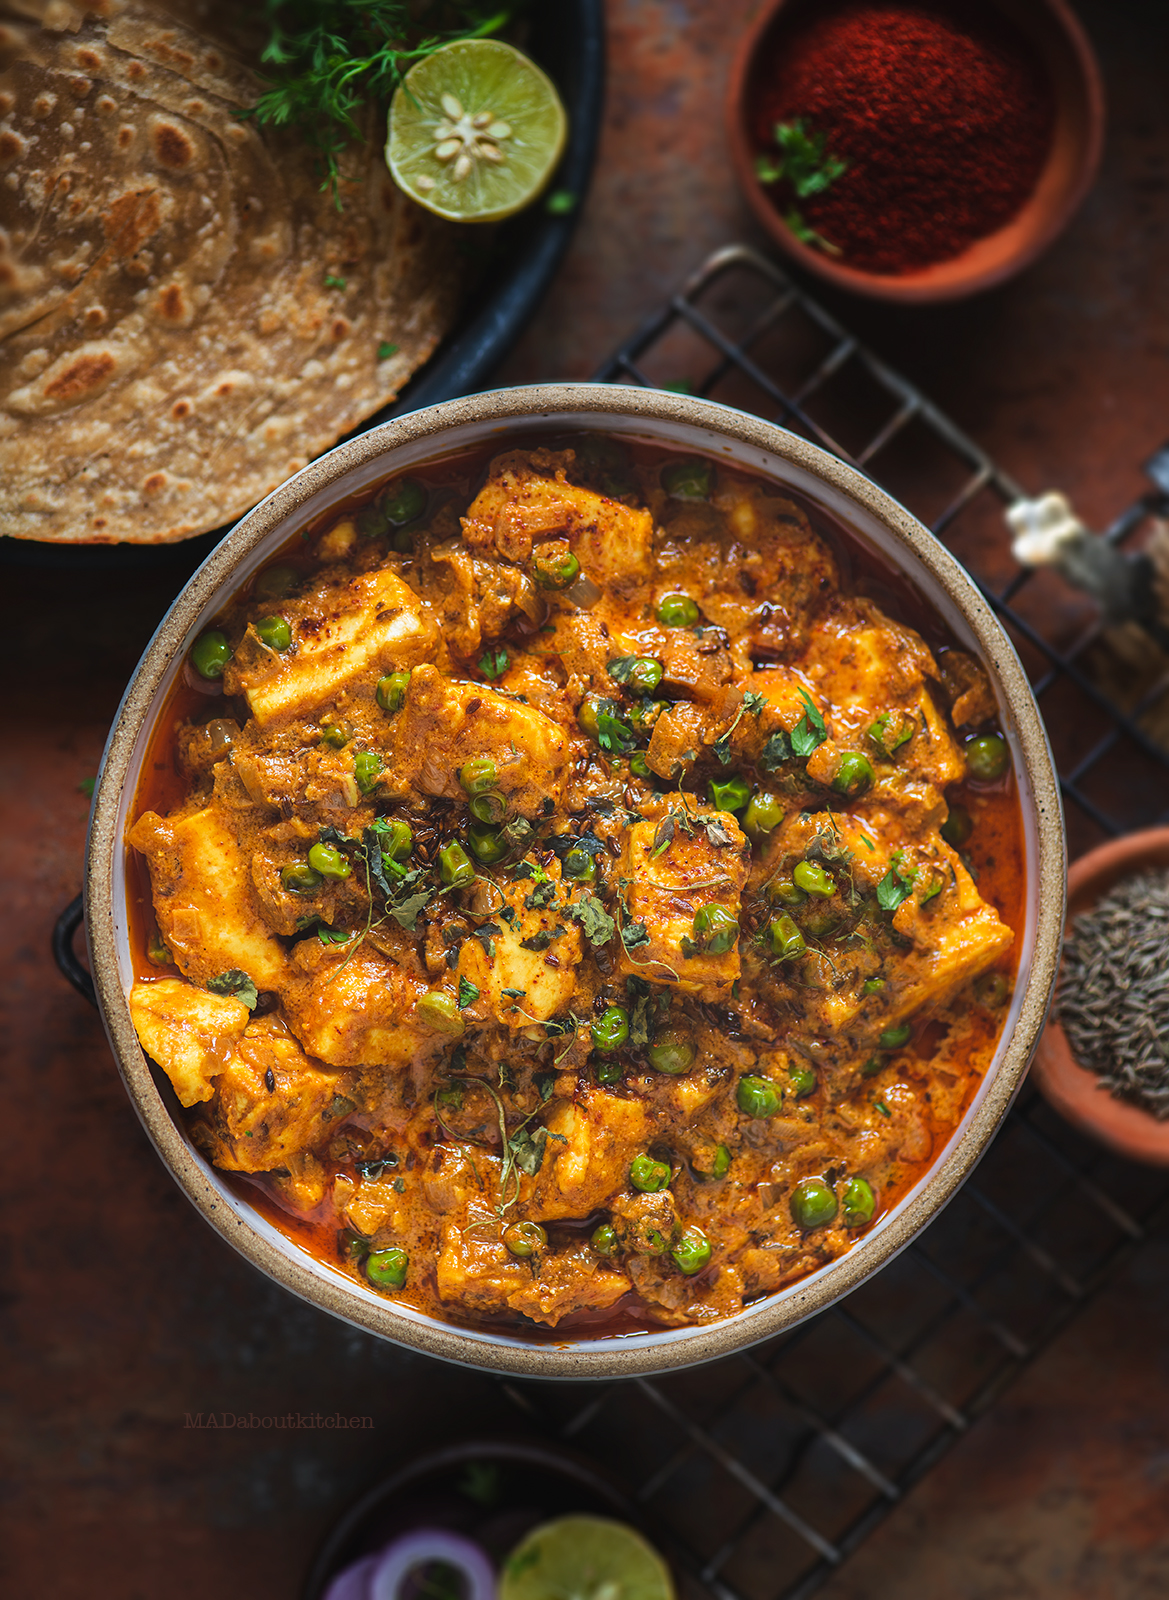 Paneer matar is cottage cheese and peas cooked in a tomato and onion gravy and flavoured with loads of spices and is one of the most common dishes in India.